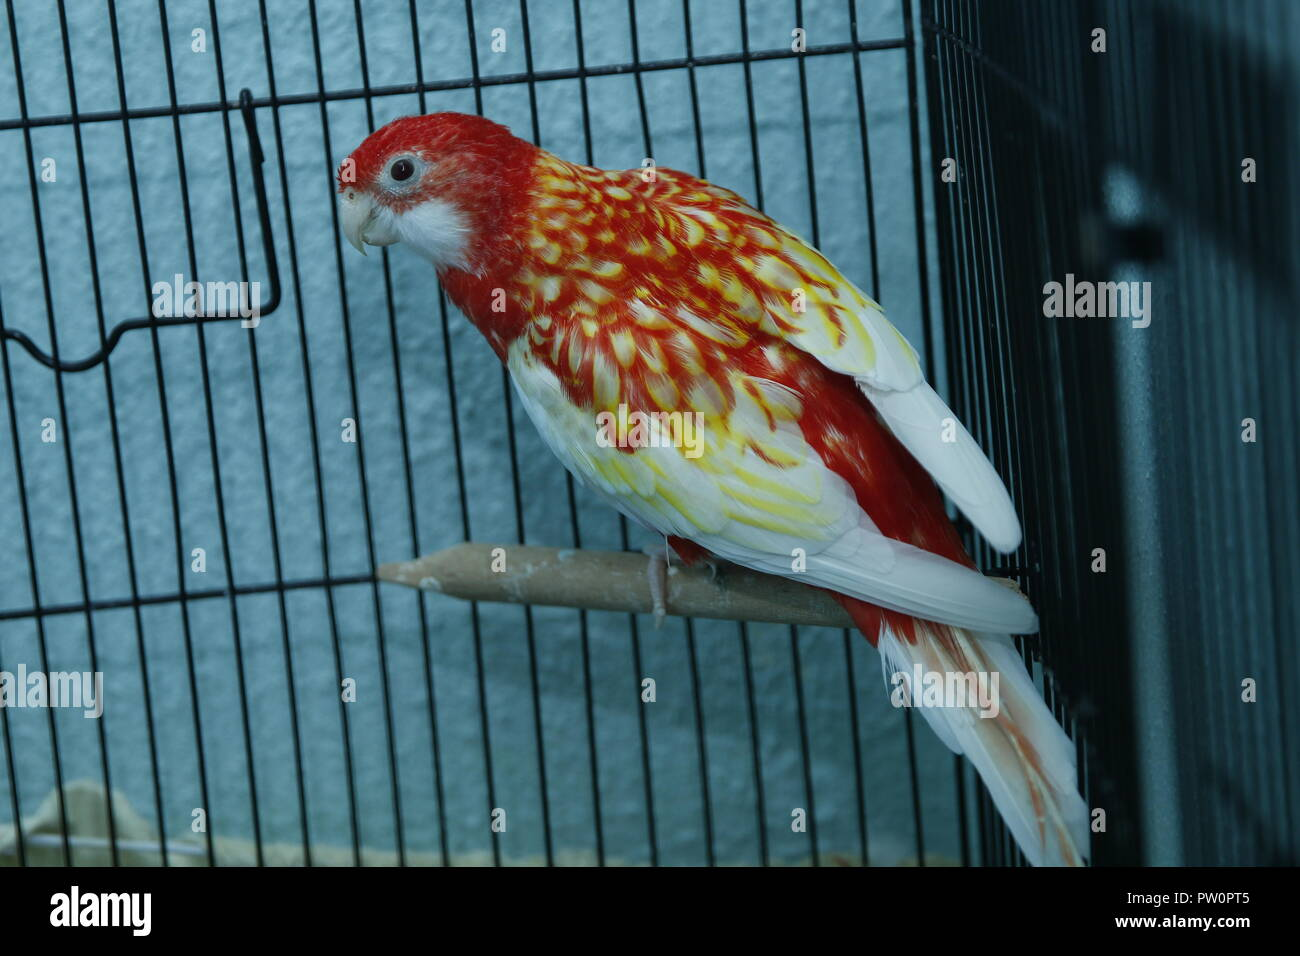 Budgie . Parakeets . Green wavy parrot sits in a cage . Rosy Faced Lovebird parrot in a cage . birds inseparable . Budgerigar on the cage. Budgie para - Stock Image